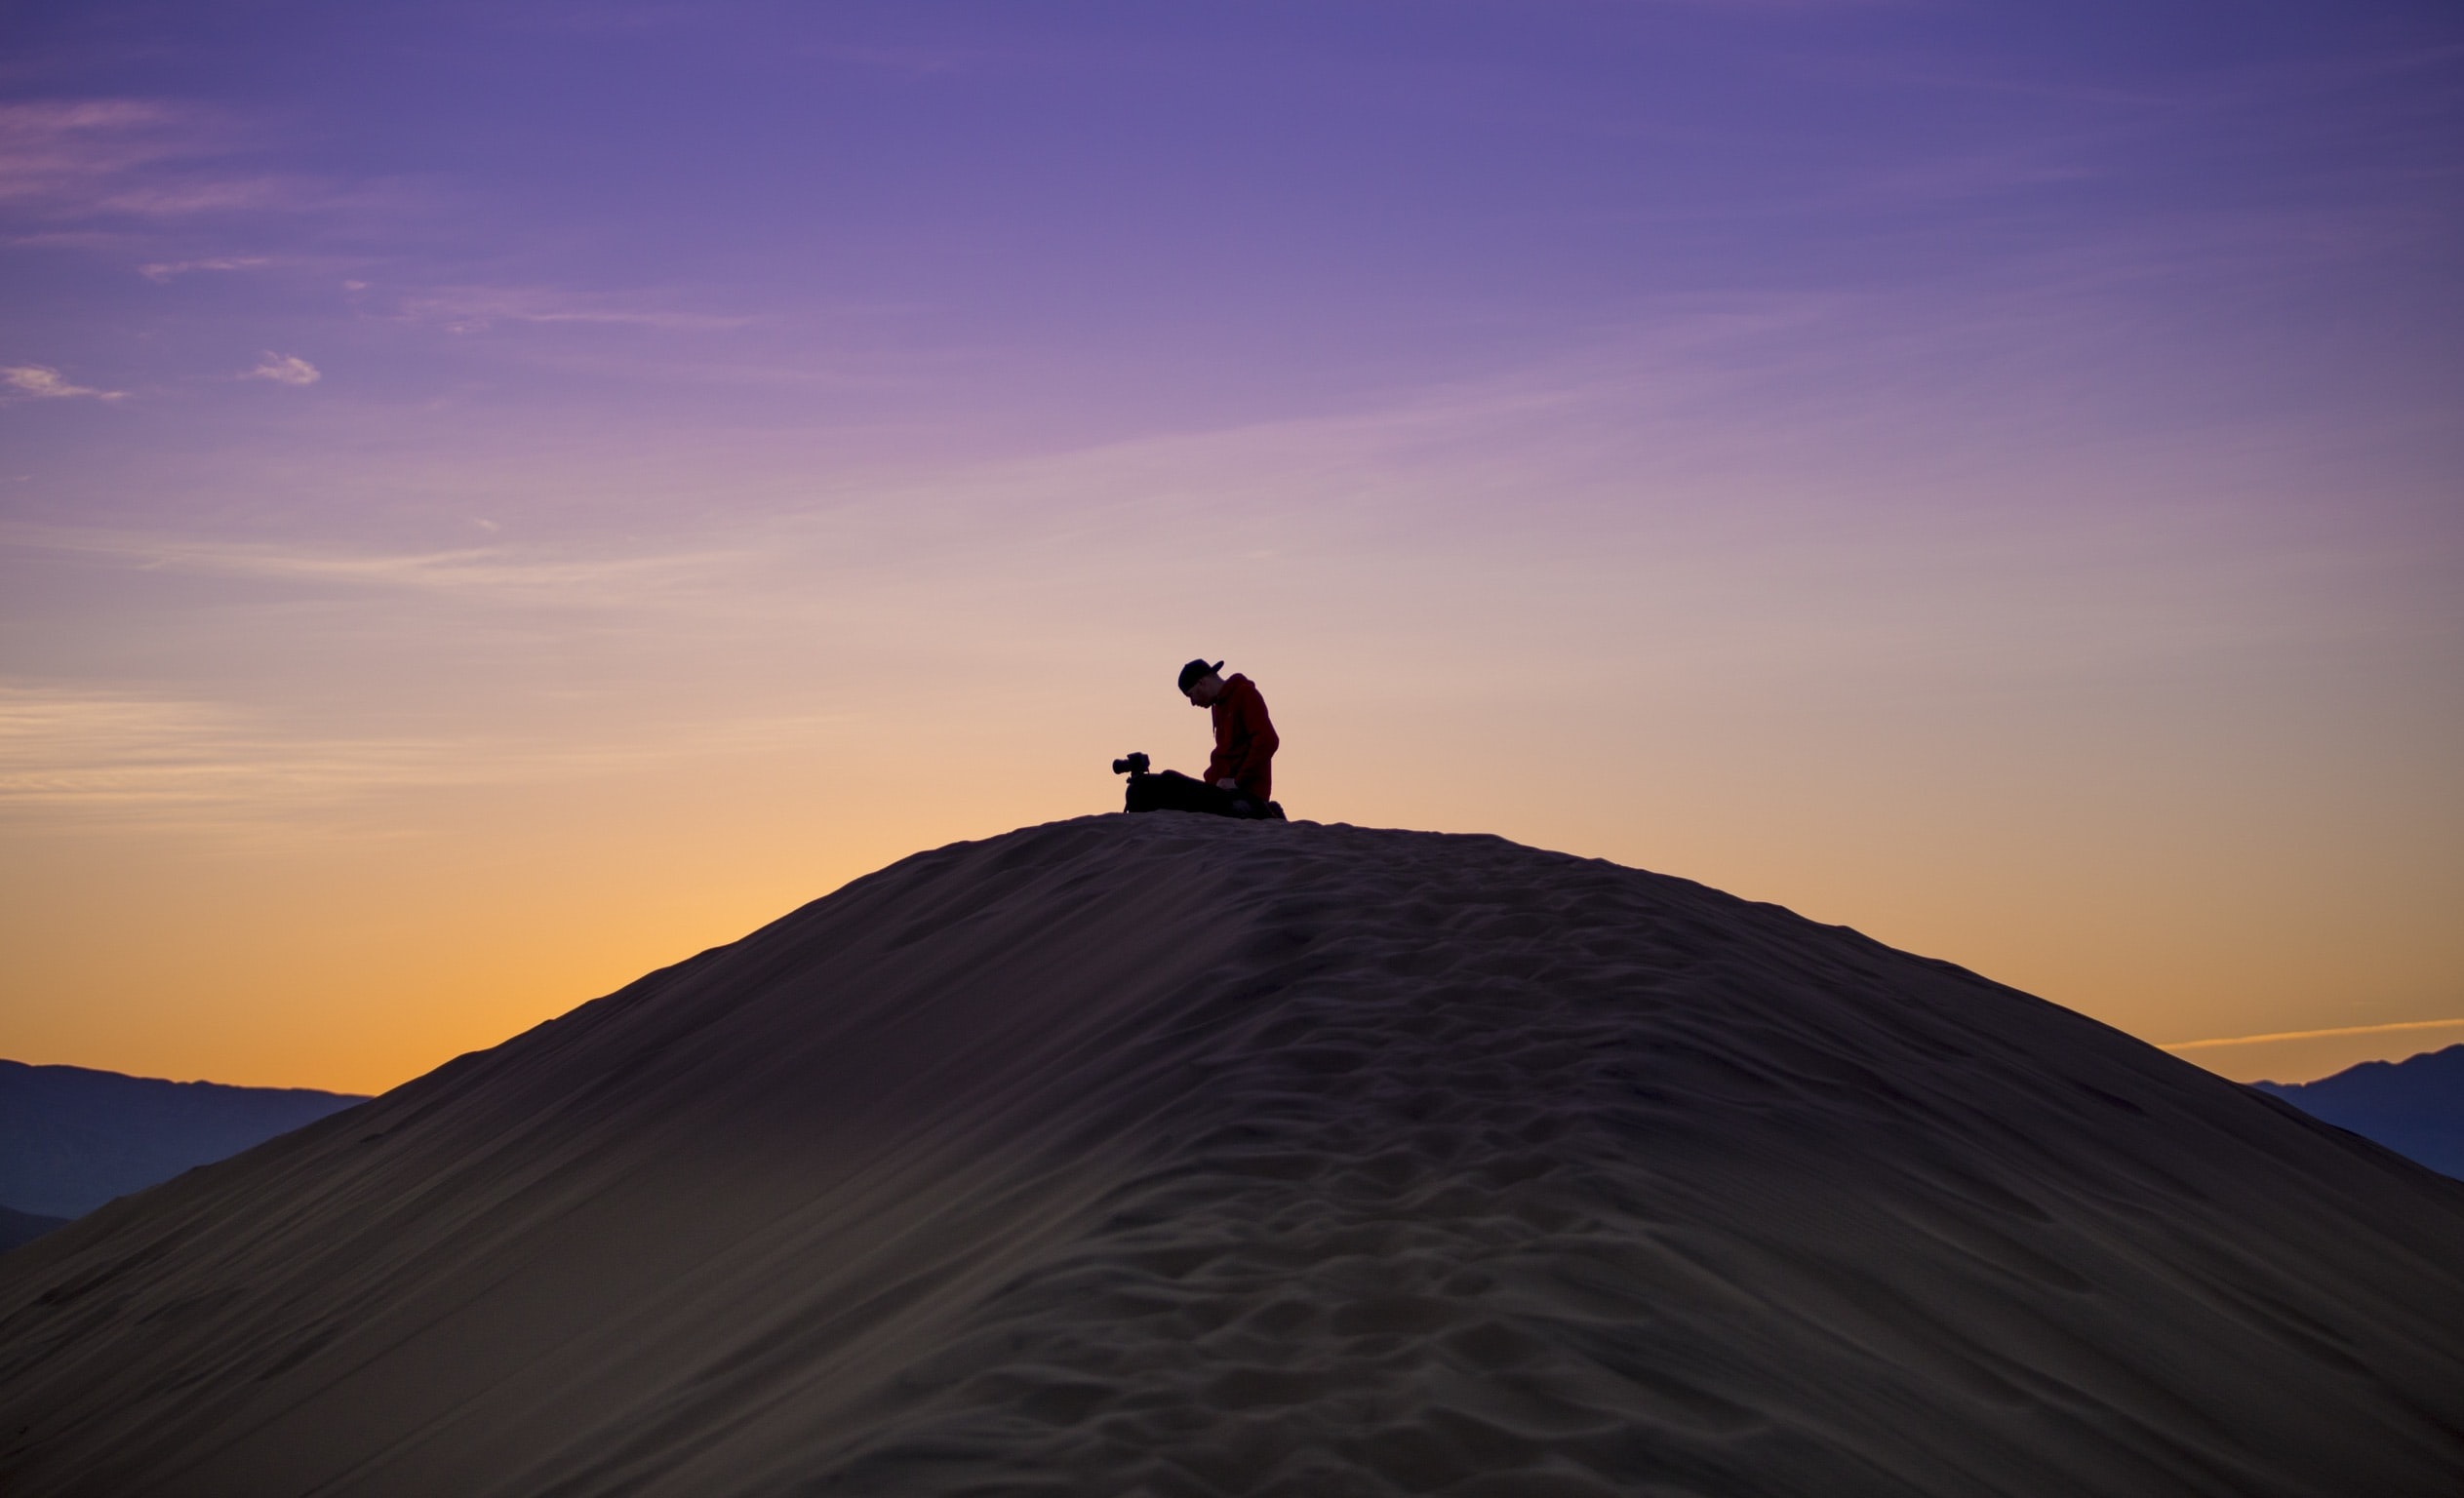 silhouette of man and woman on desert